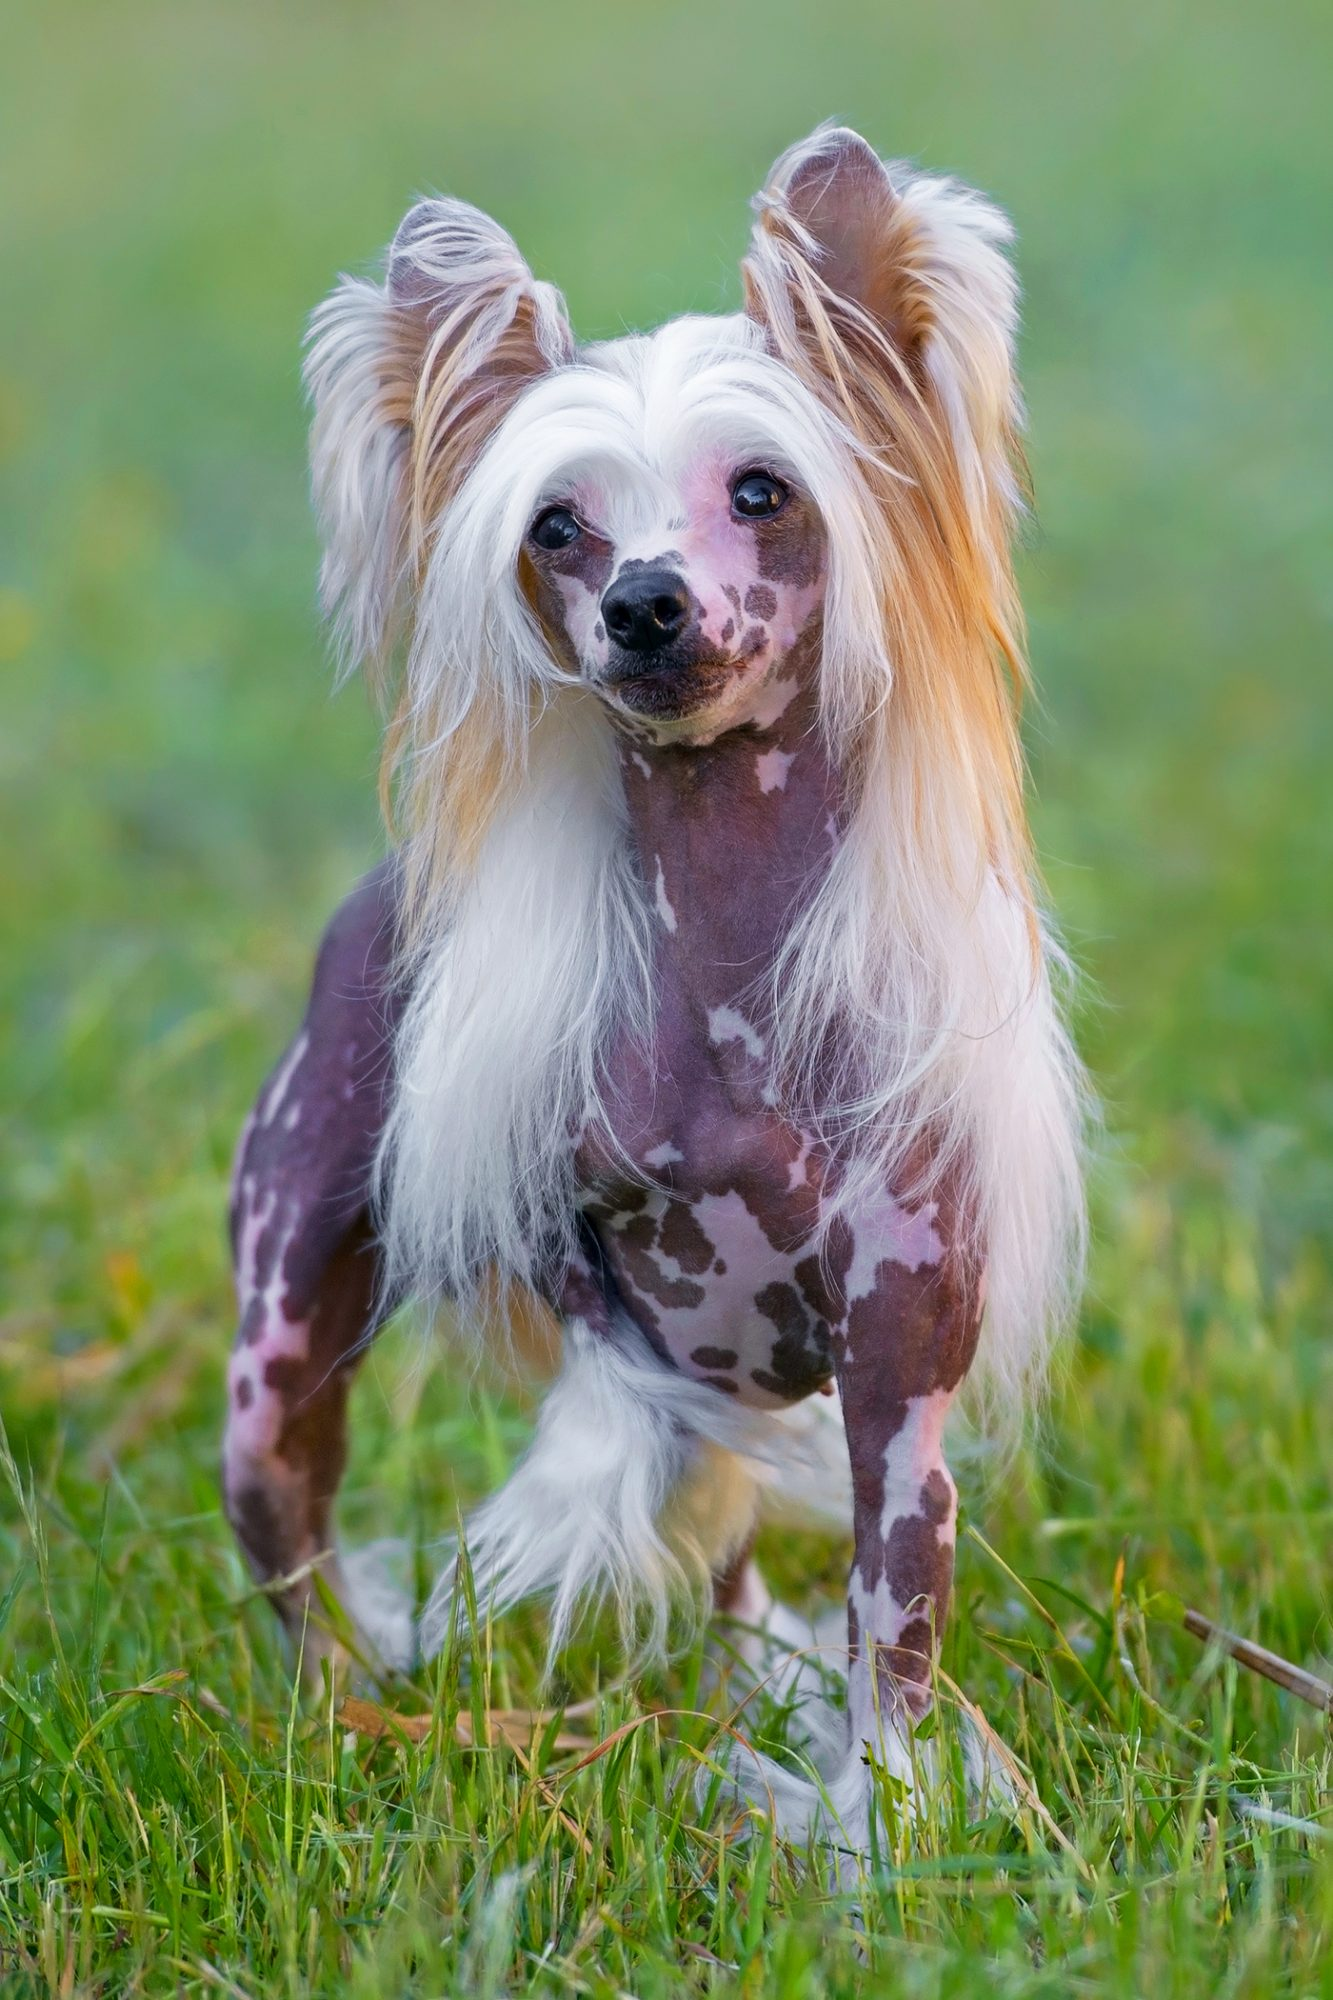 Chinese Crested dog stands in grass